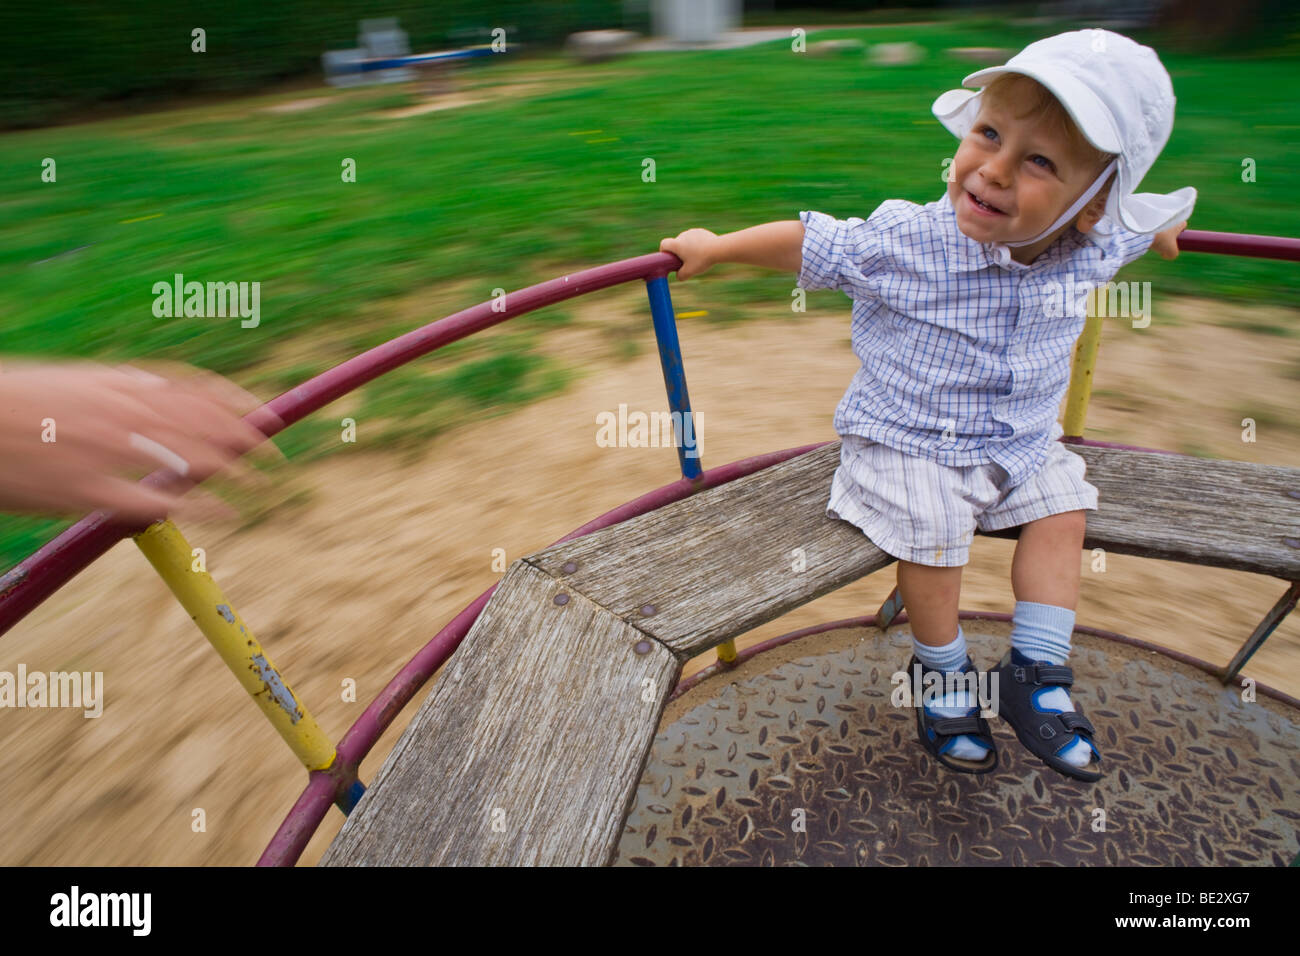 Boy, 18 months, riding a carousel - Stock Image